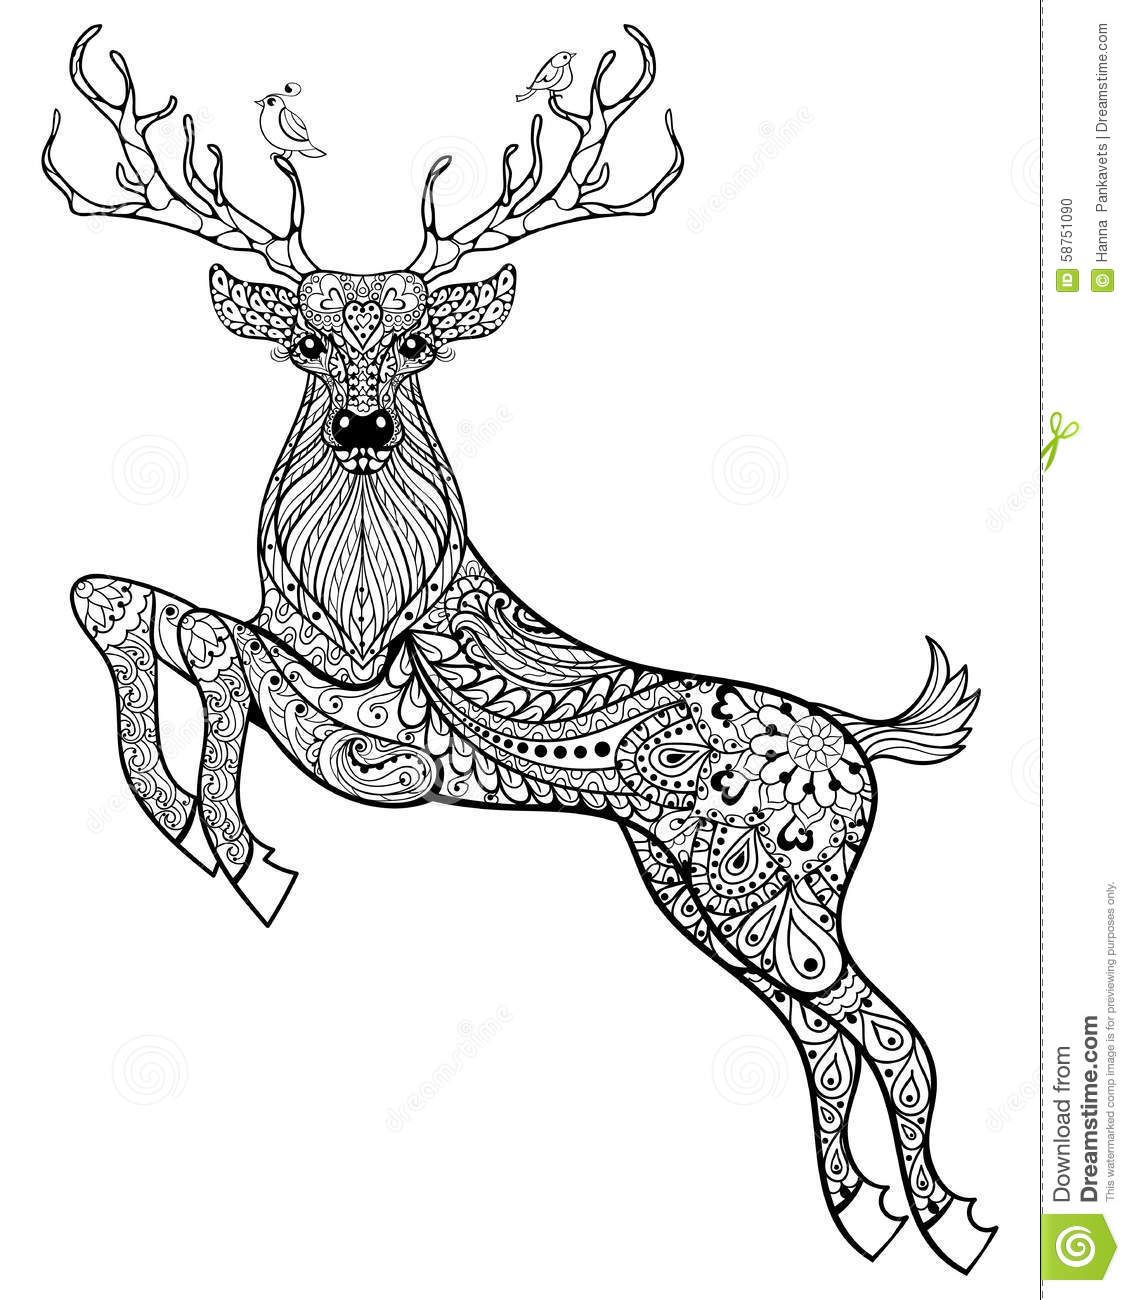 Anti stress colouring pages for adults - Hand Drawn Magic Horned Deer With Birds For Adult Anti Stress Co Download From Over Horse Coloring